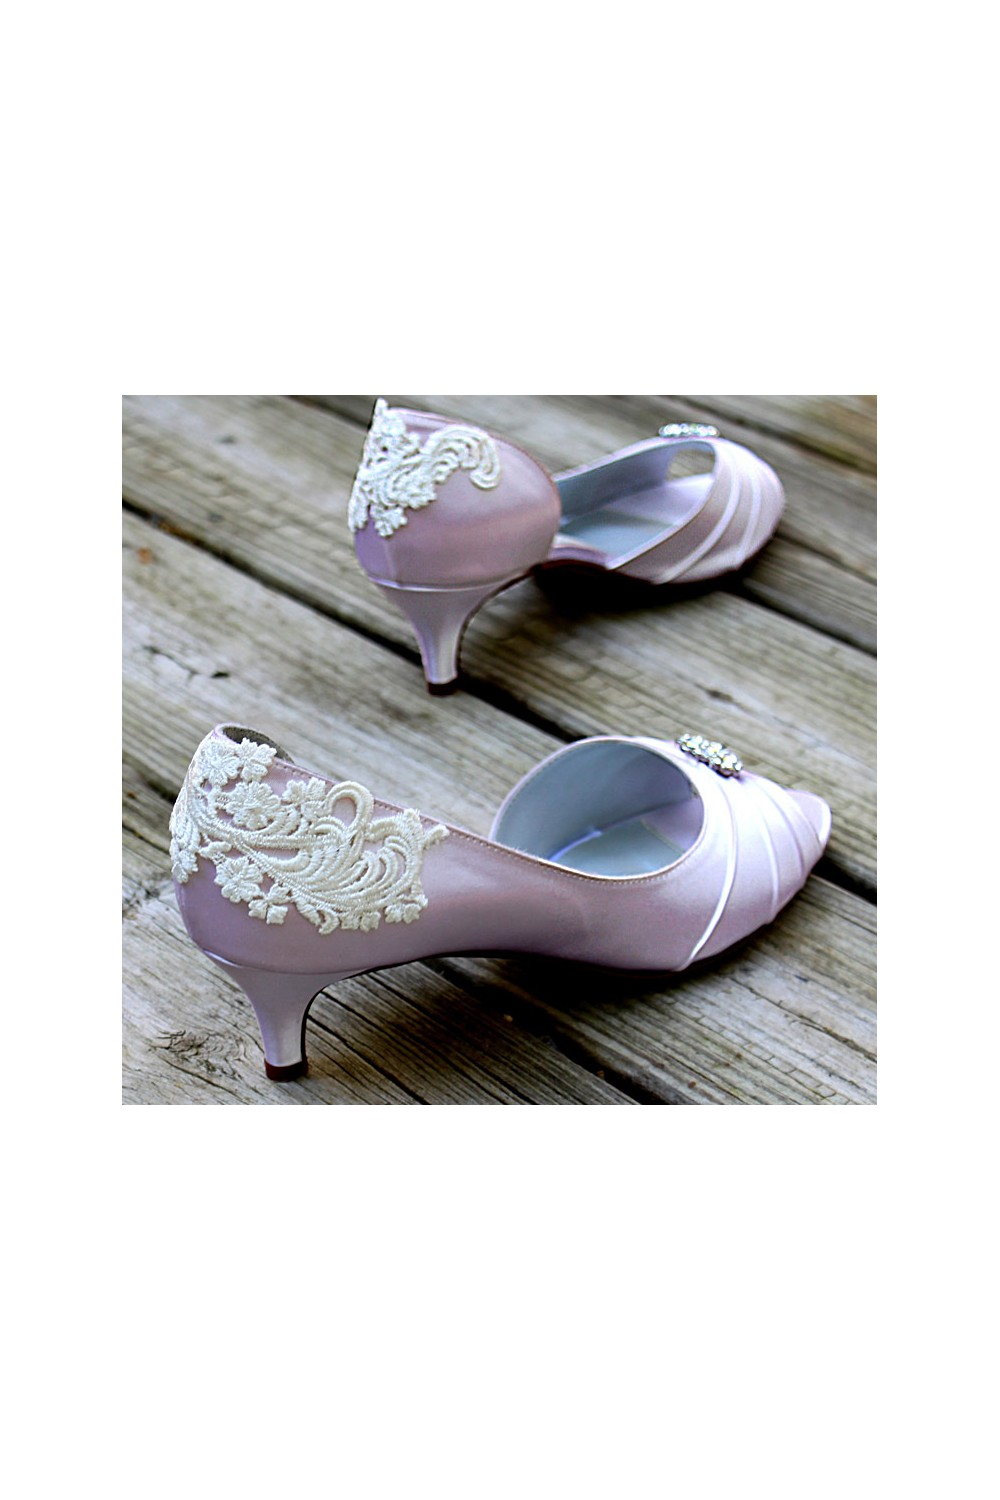 Lace Bridal Shoes In Vintage Style Cream Color